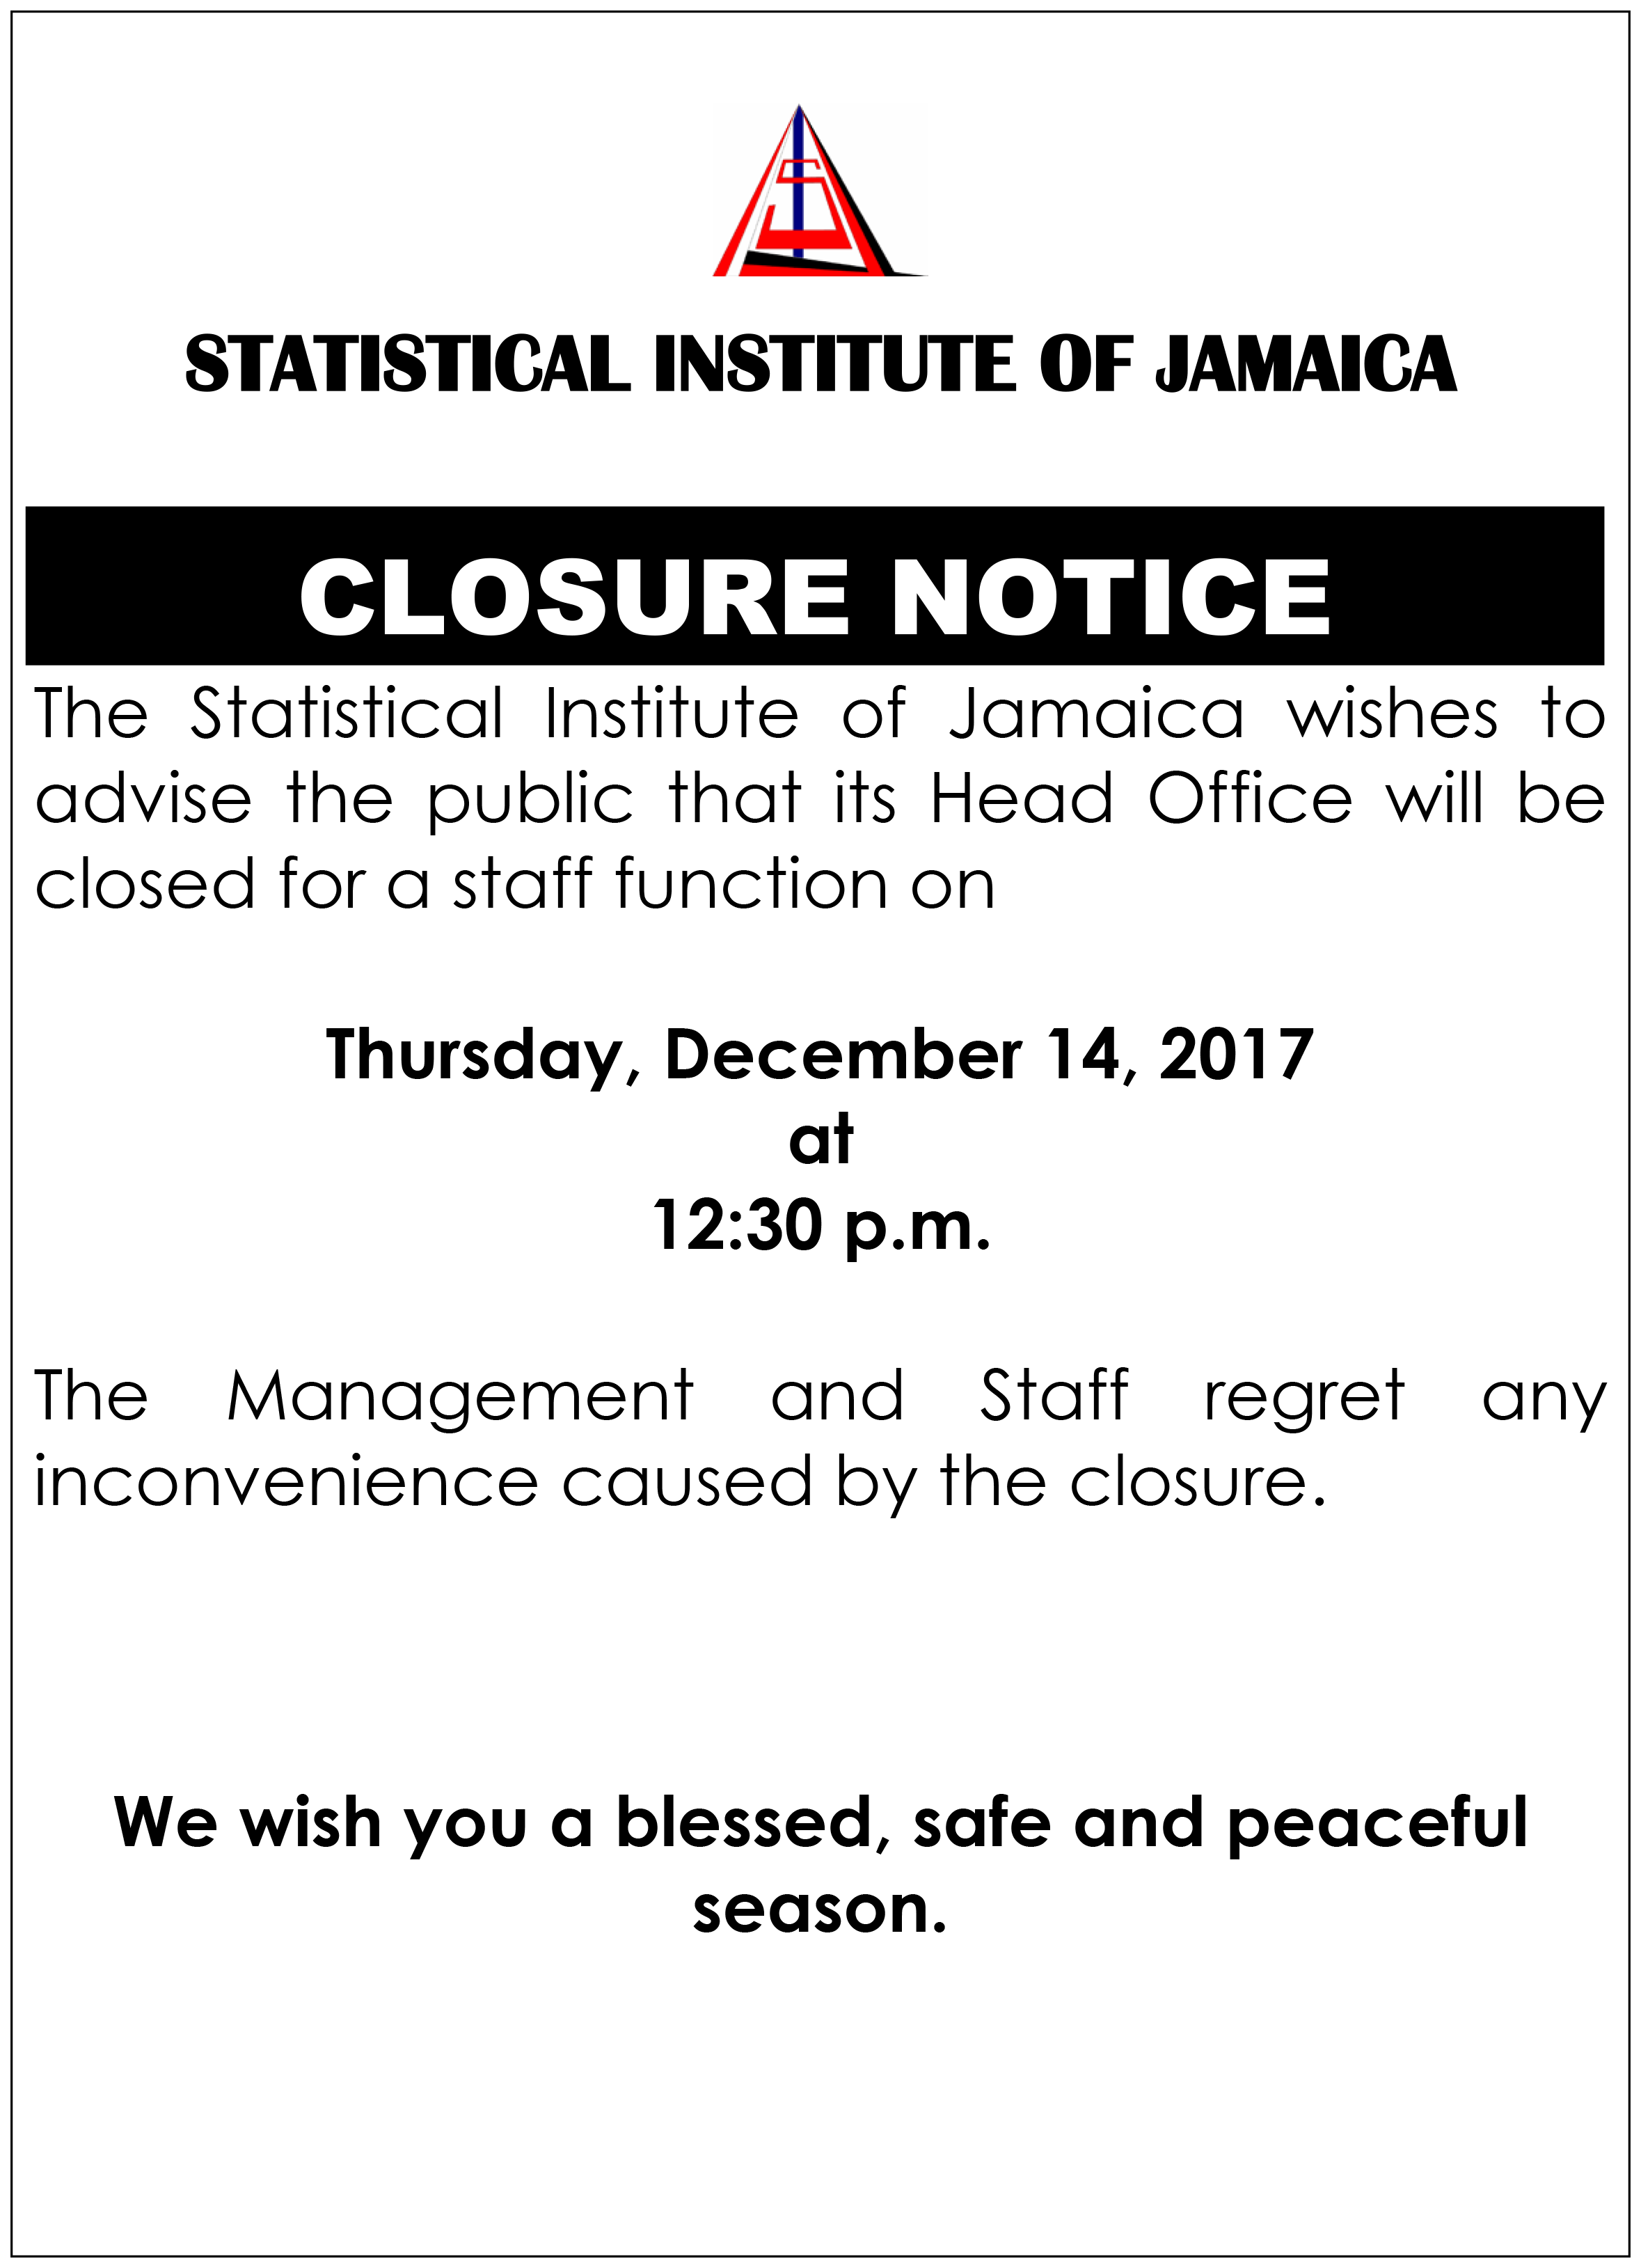 statin office closure